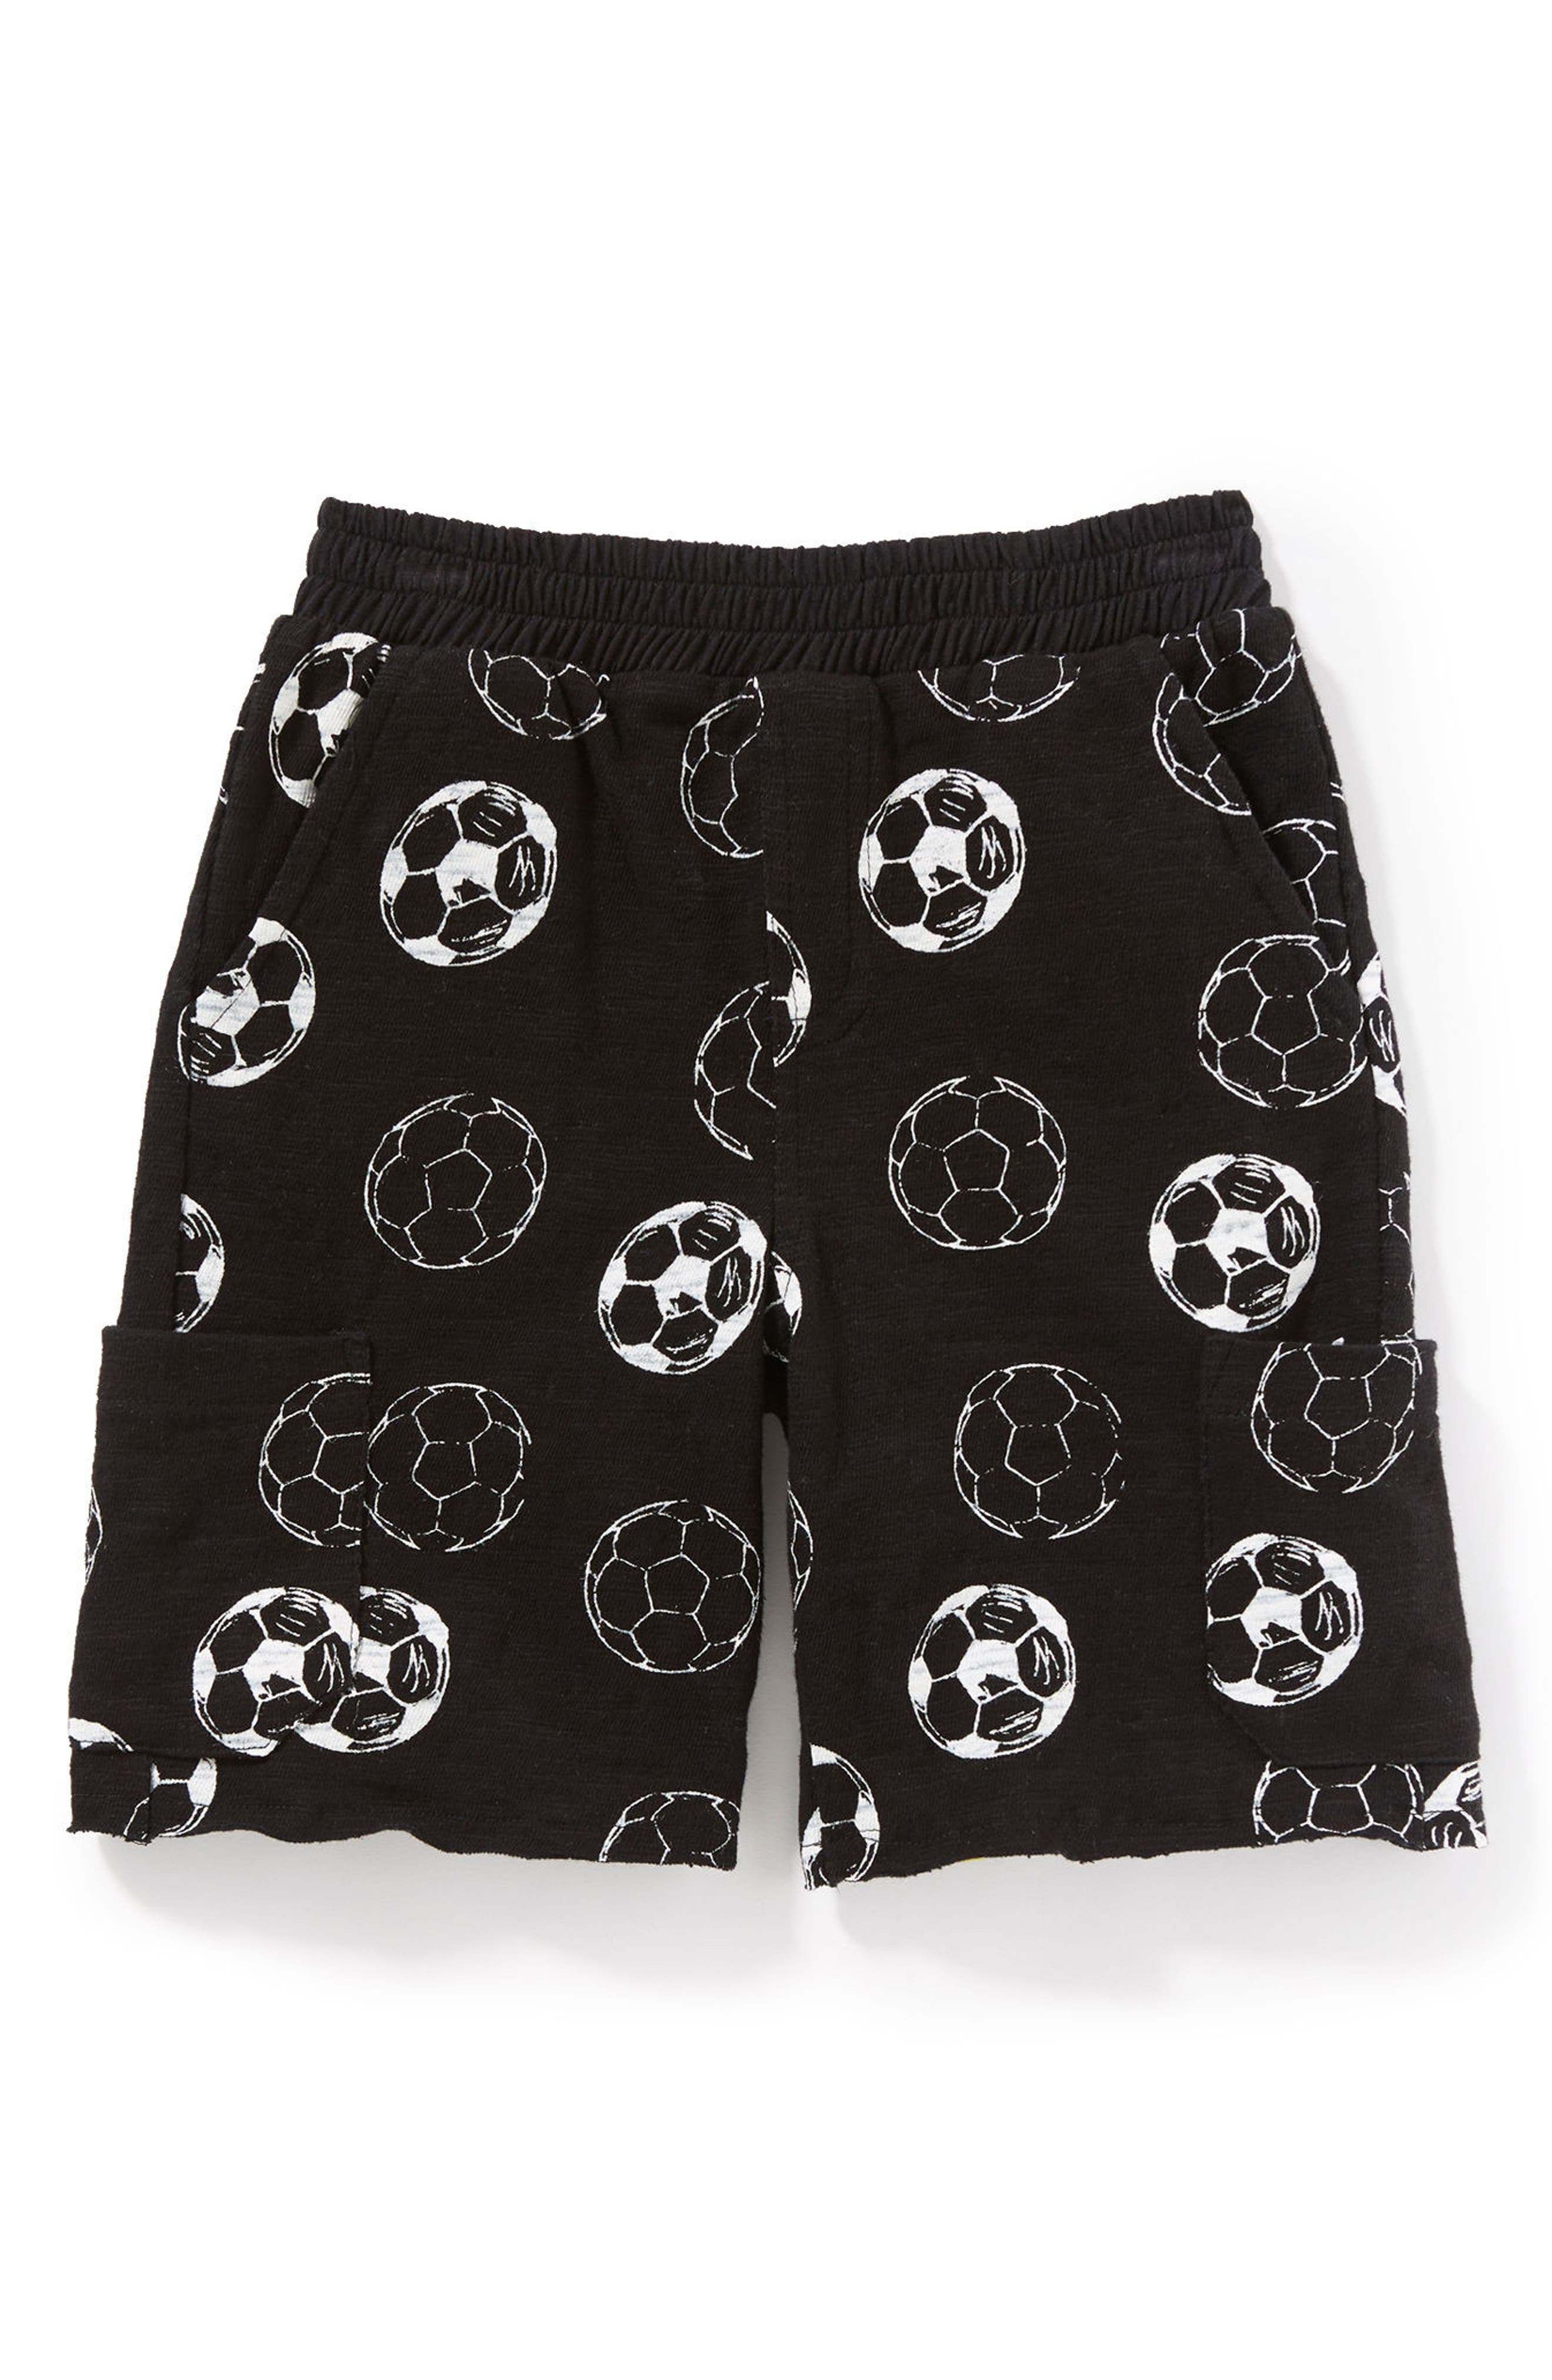 Soccer Ball Shorts,                             Main thumbnail 1, color,                             Black